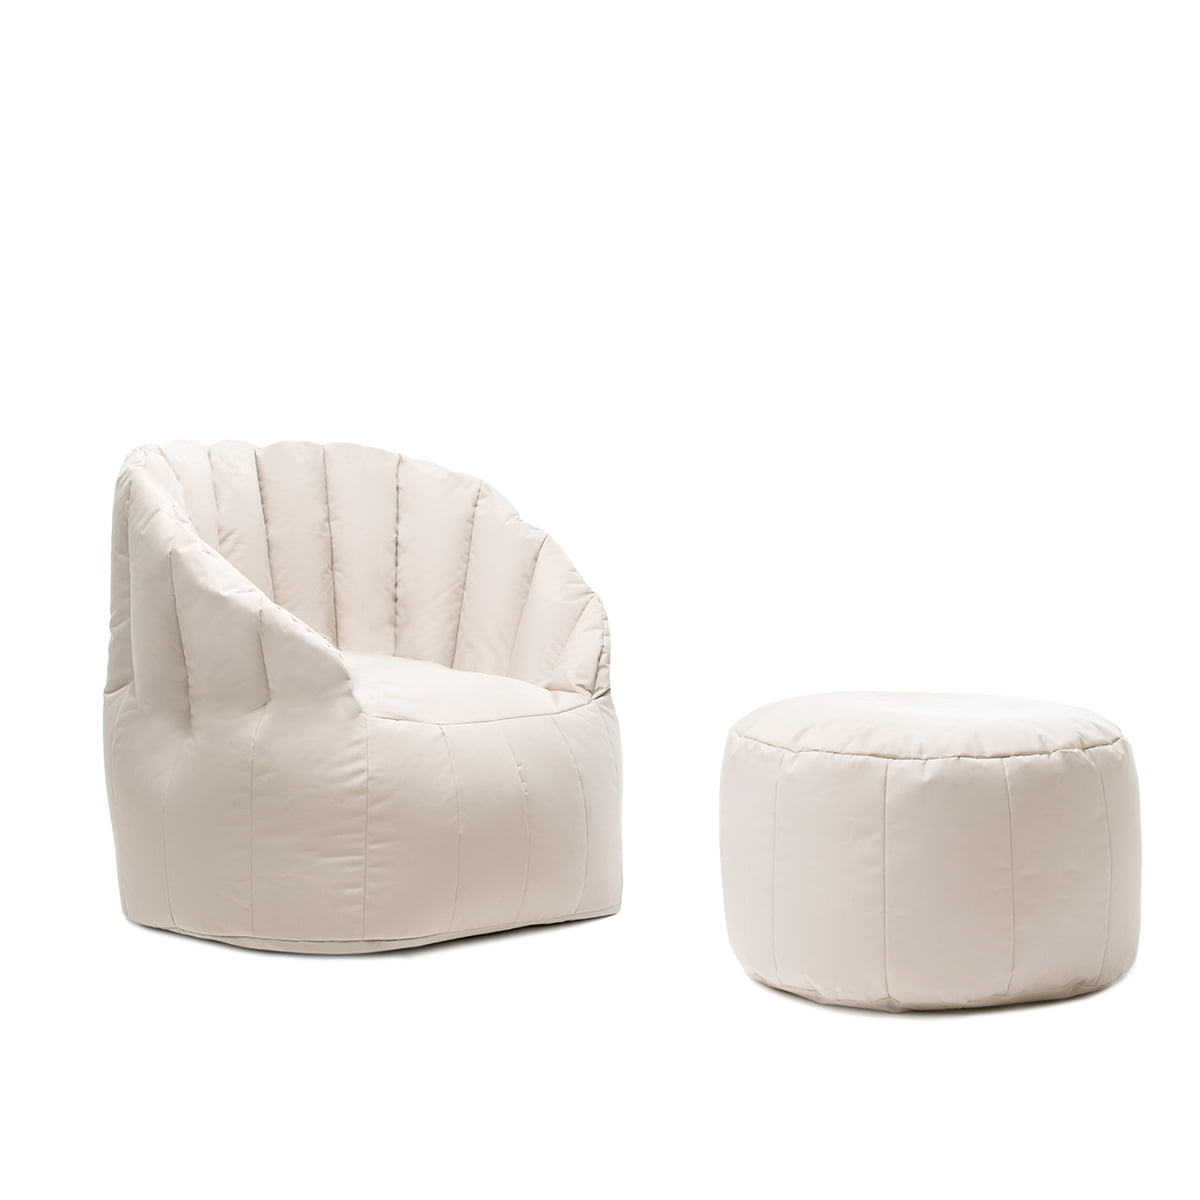 Shell pouf indoor by sitting bull in the shop - Naturewood furniture for both indoor and outdoor sitting ...